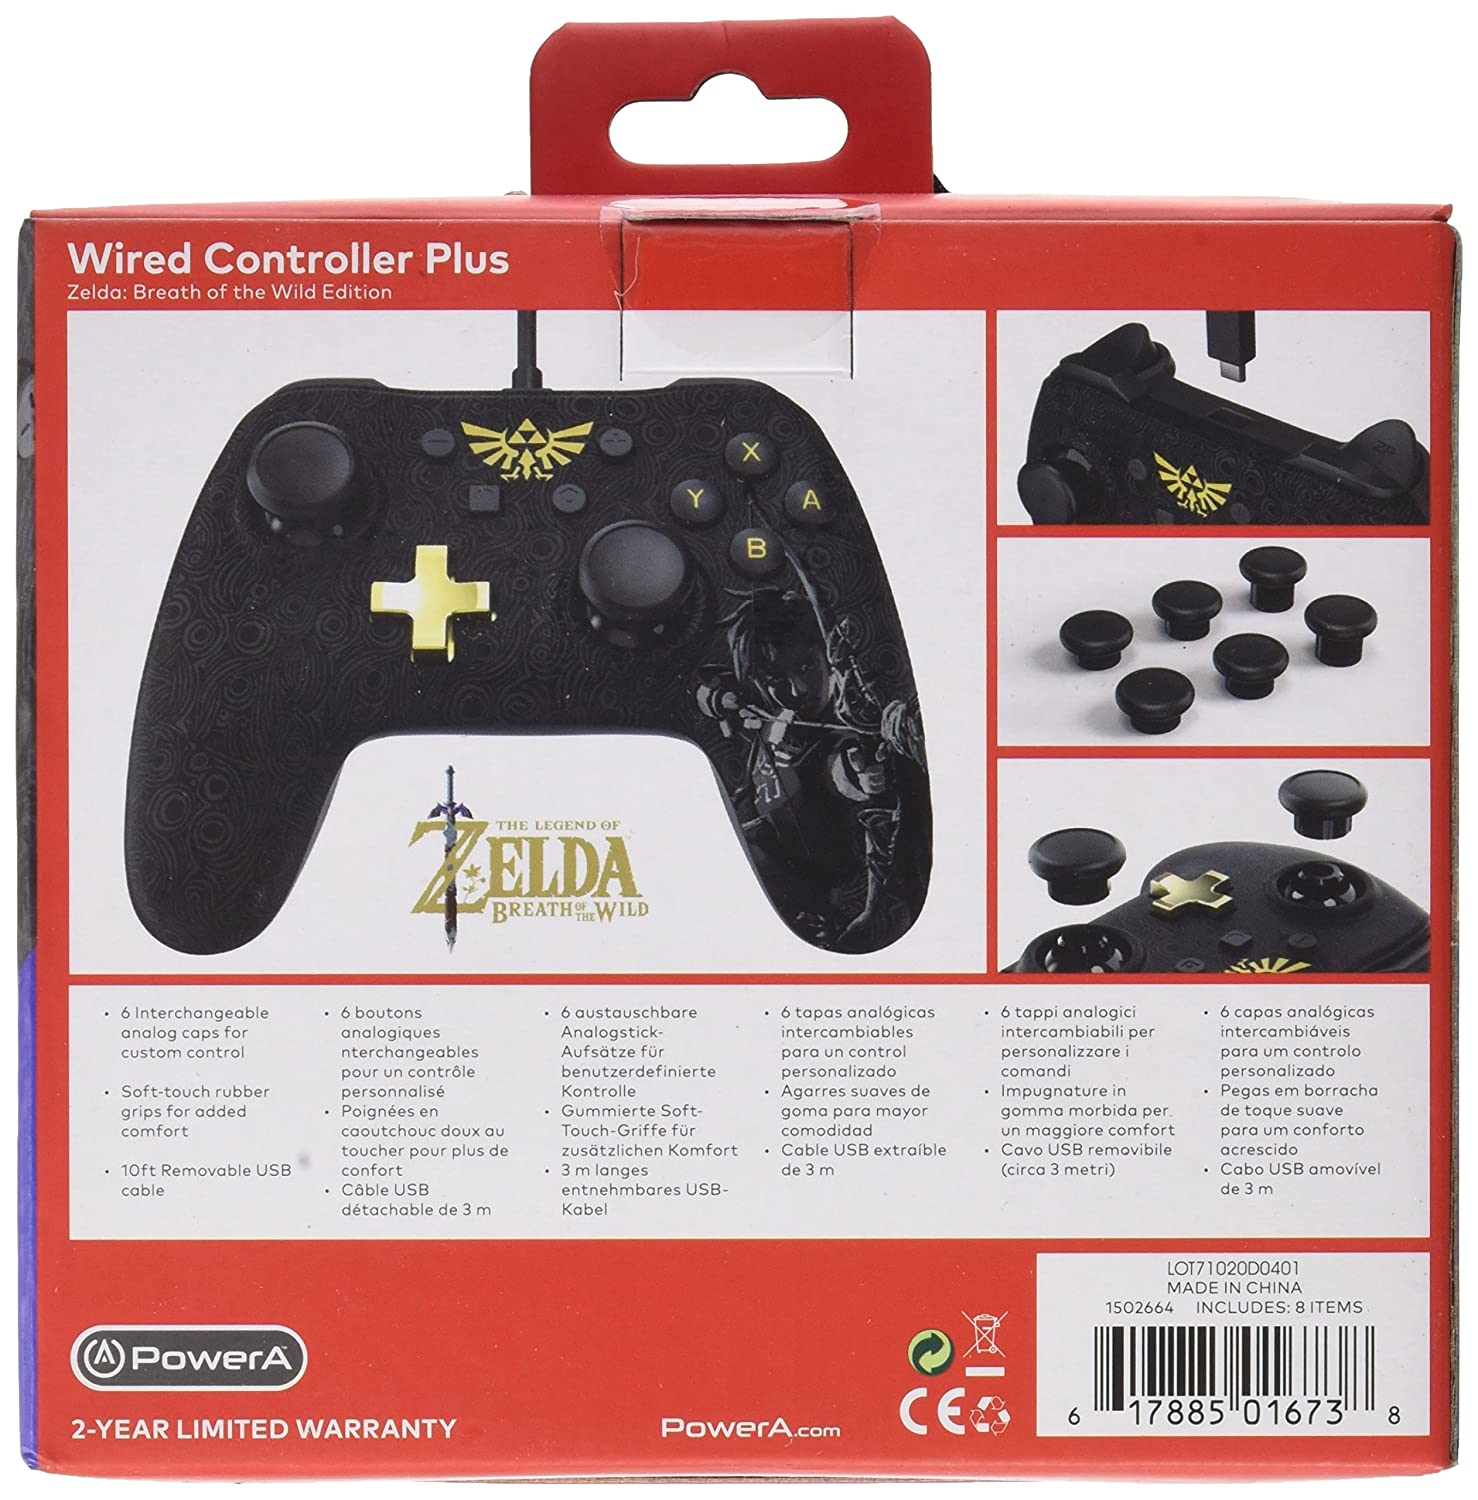 Nintendo Switch Wired Controller Plus - Zelda: Breath of the